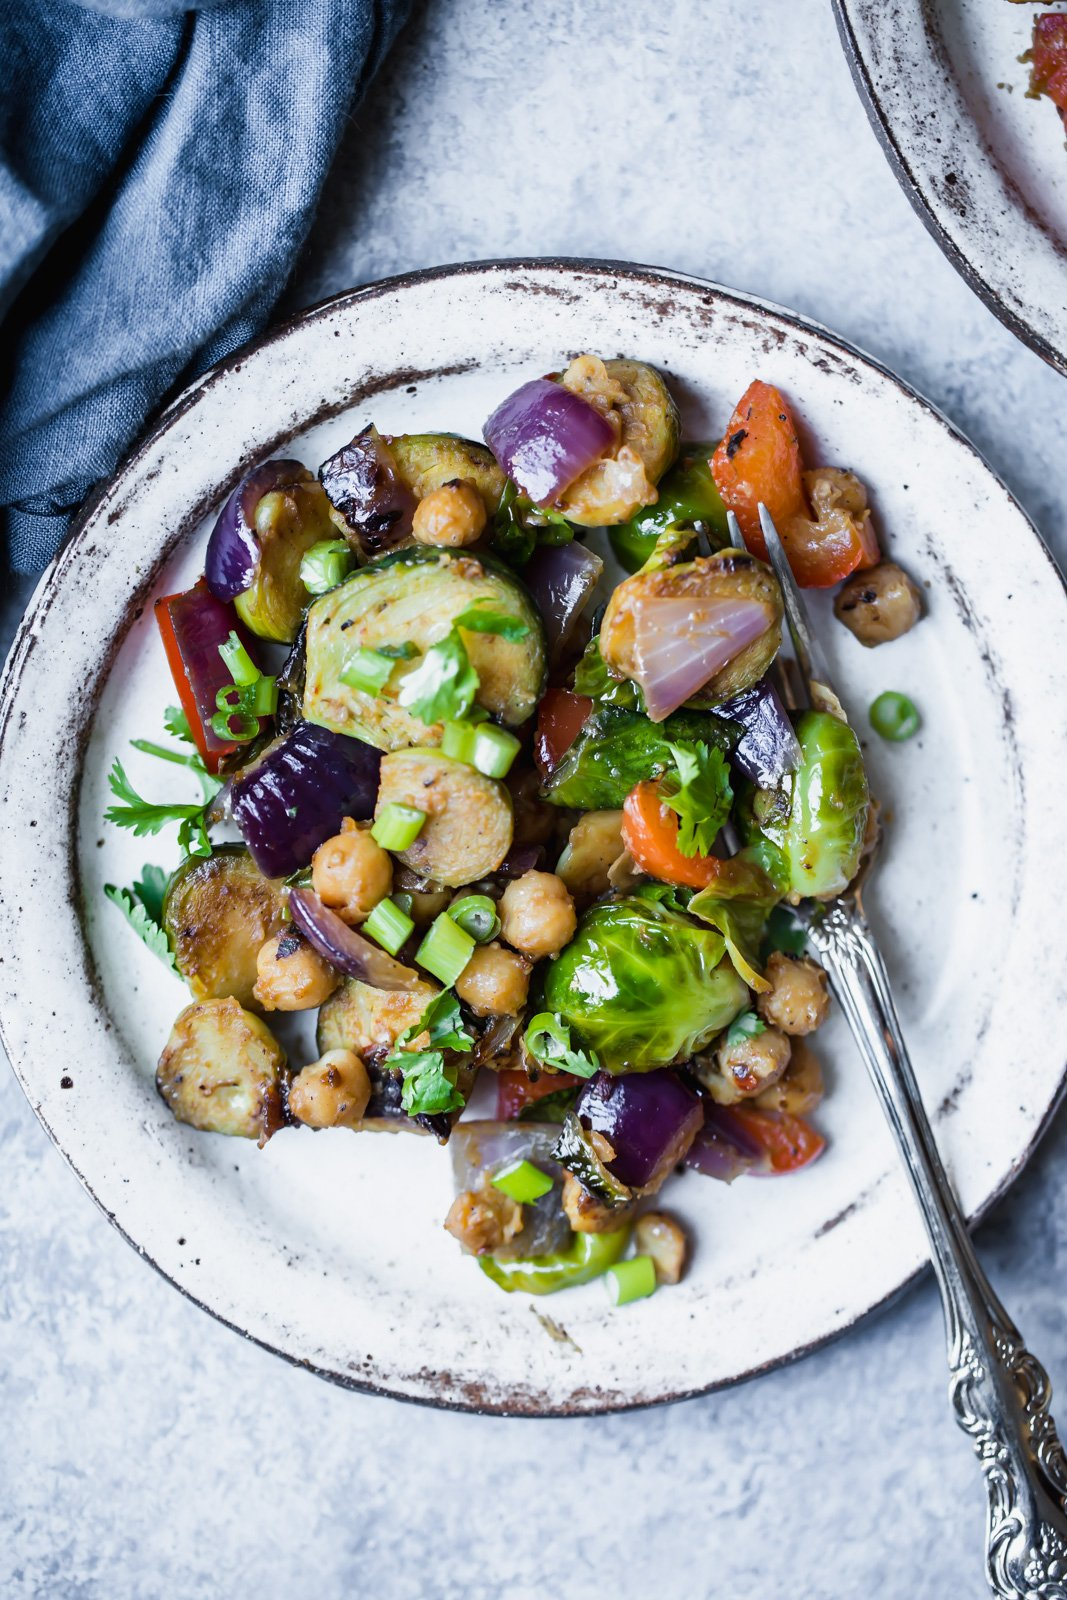 Protein-packed chickpea recipes: chickpea and brussels sprouts stir fry on a plate